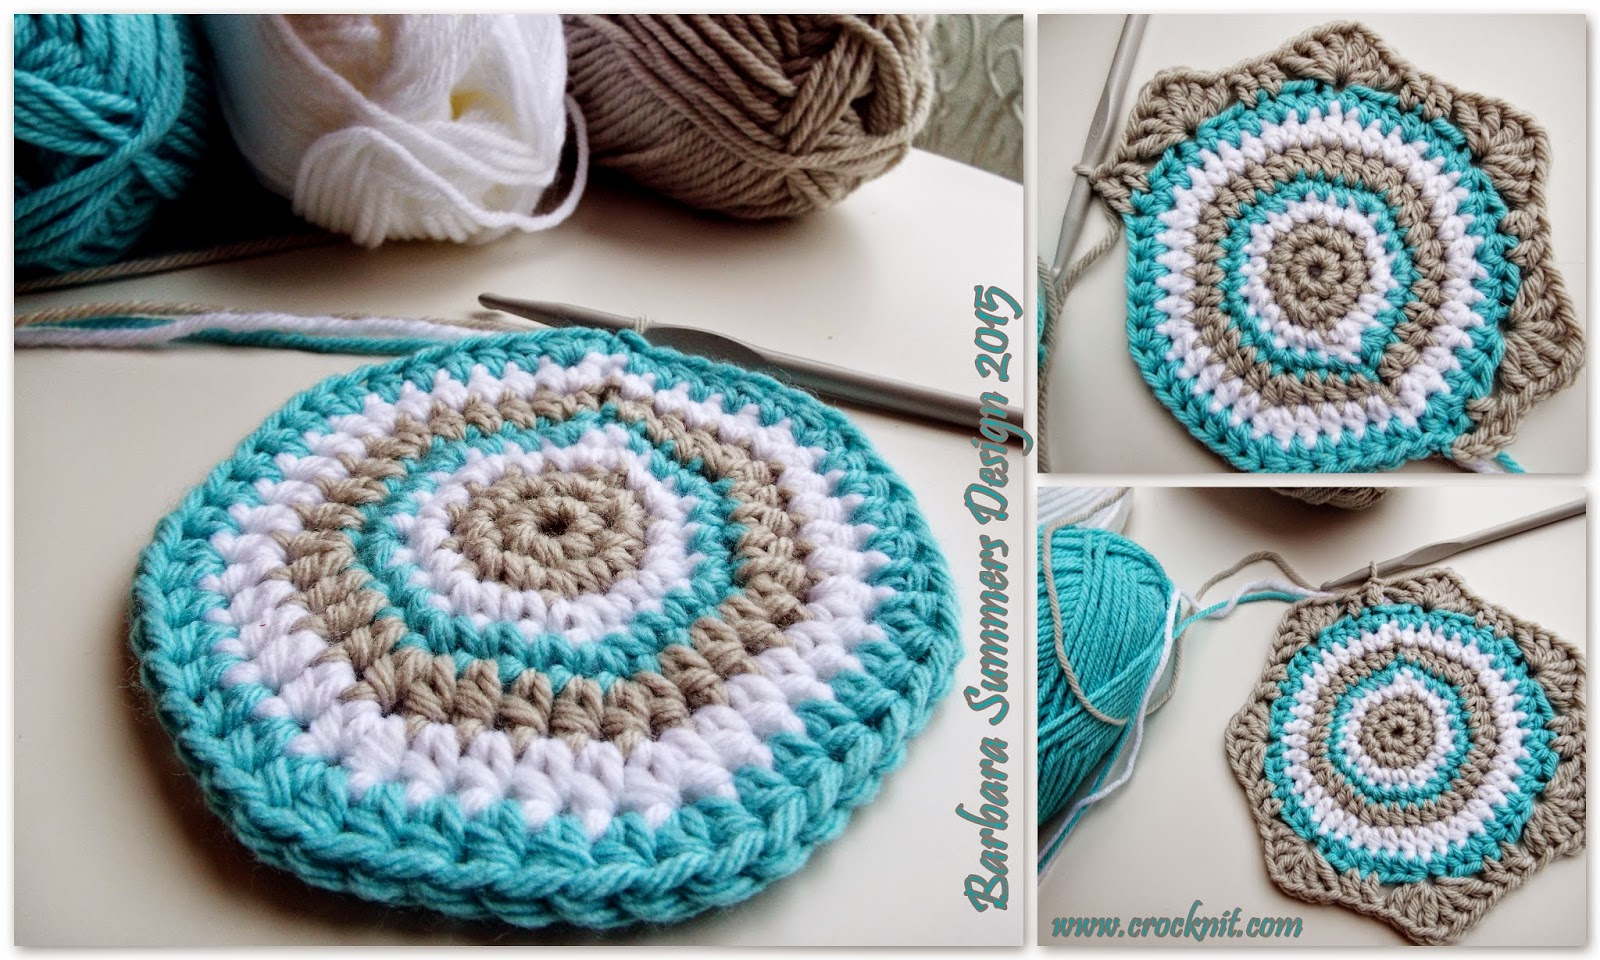 MICROCKNIT CREATIONS: CINDY Crochet Drawstring Bag FREE PATTERN